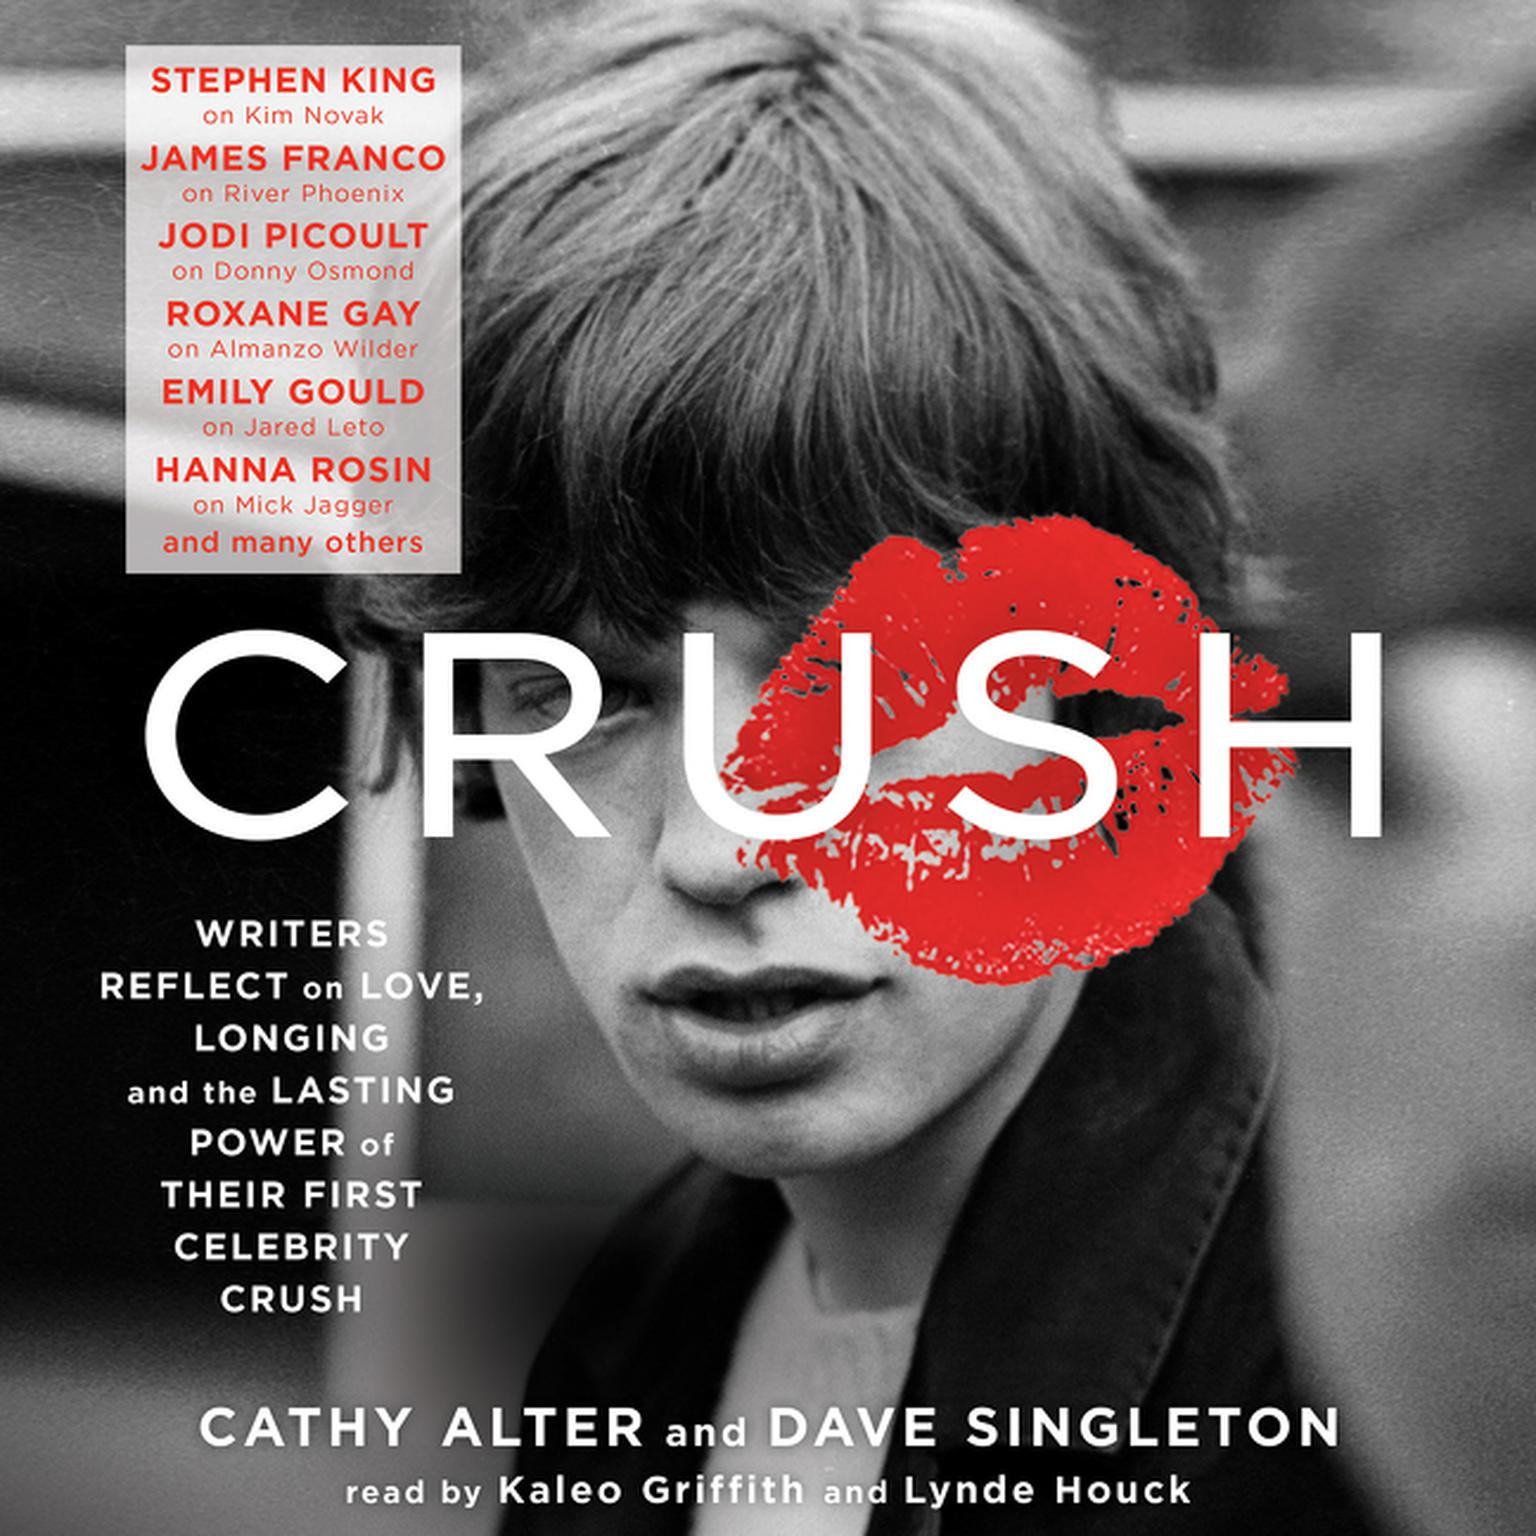 CRUSH: Writers Reflect on Love, Longing and the Lasting Power of Their First Celebrity Crush Audiobook, by Cathy Alter